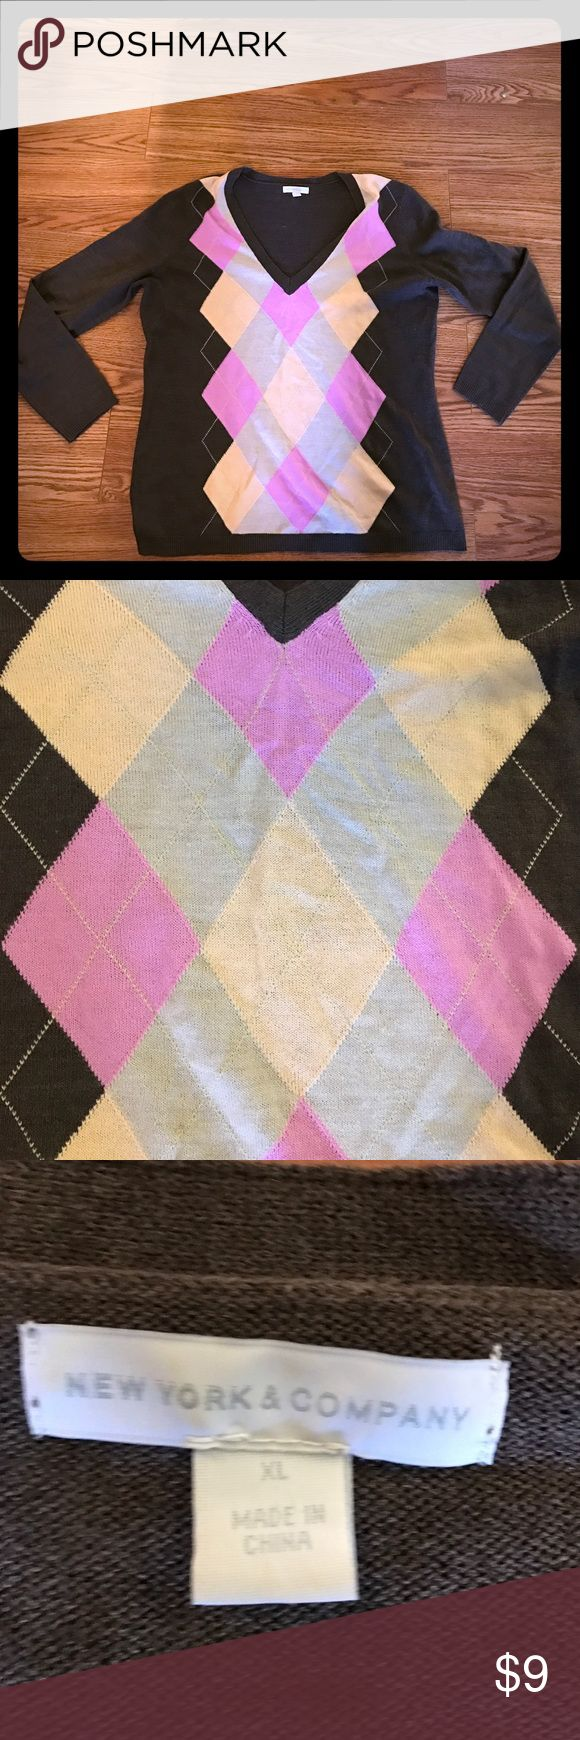 Brown argyle sweater Brown sweater, pink and creme argyle. NY & CO. Size XL New York & Company Sweaters